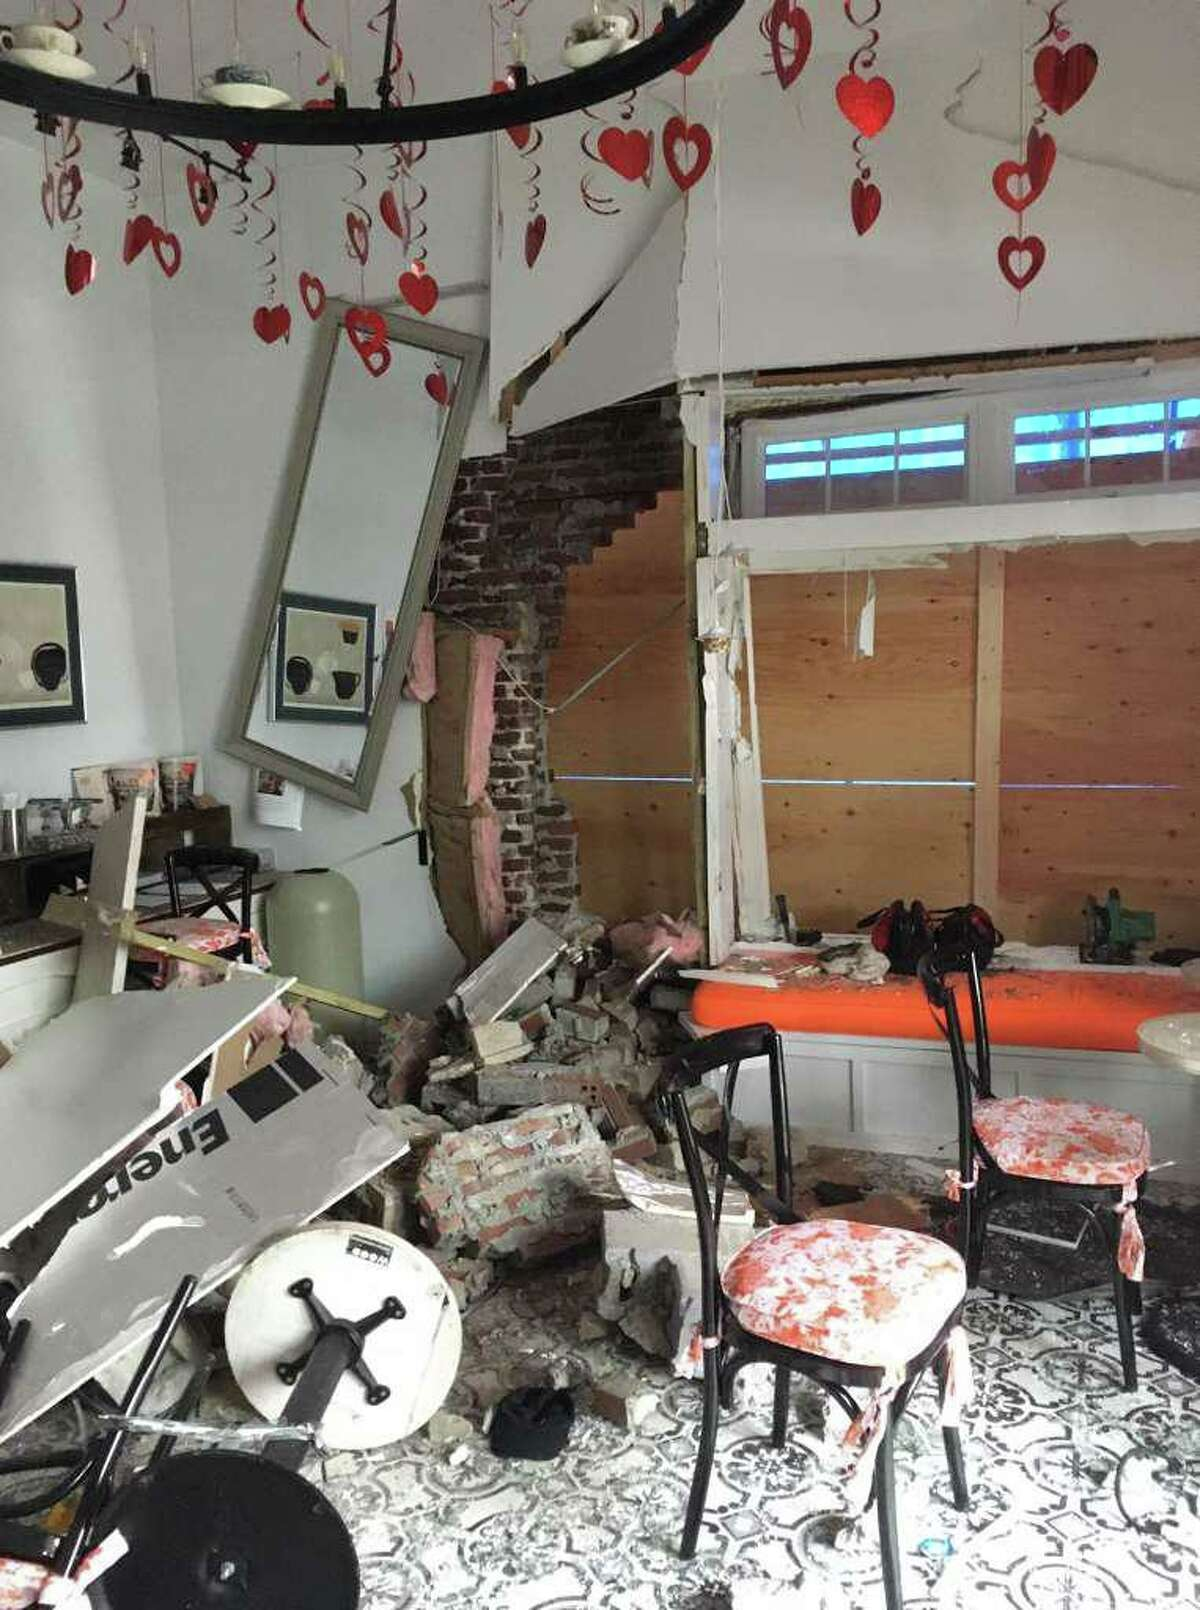 The inside of Chocoylatte Gourmet was severely damaged after the shop was hit by a car late on the evening of Feb. 6.